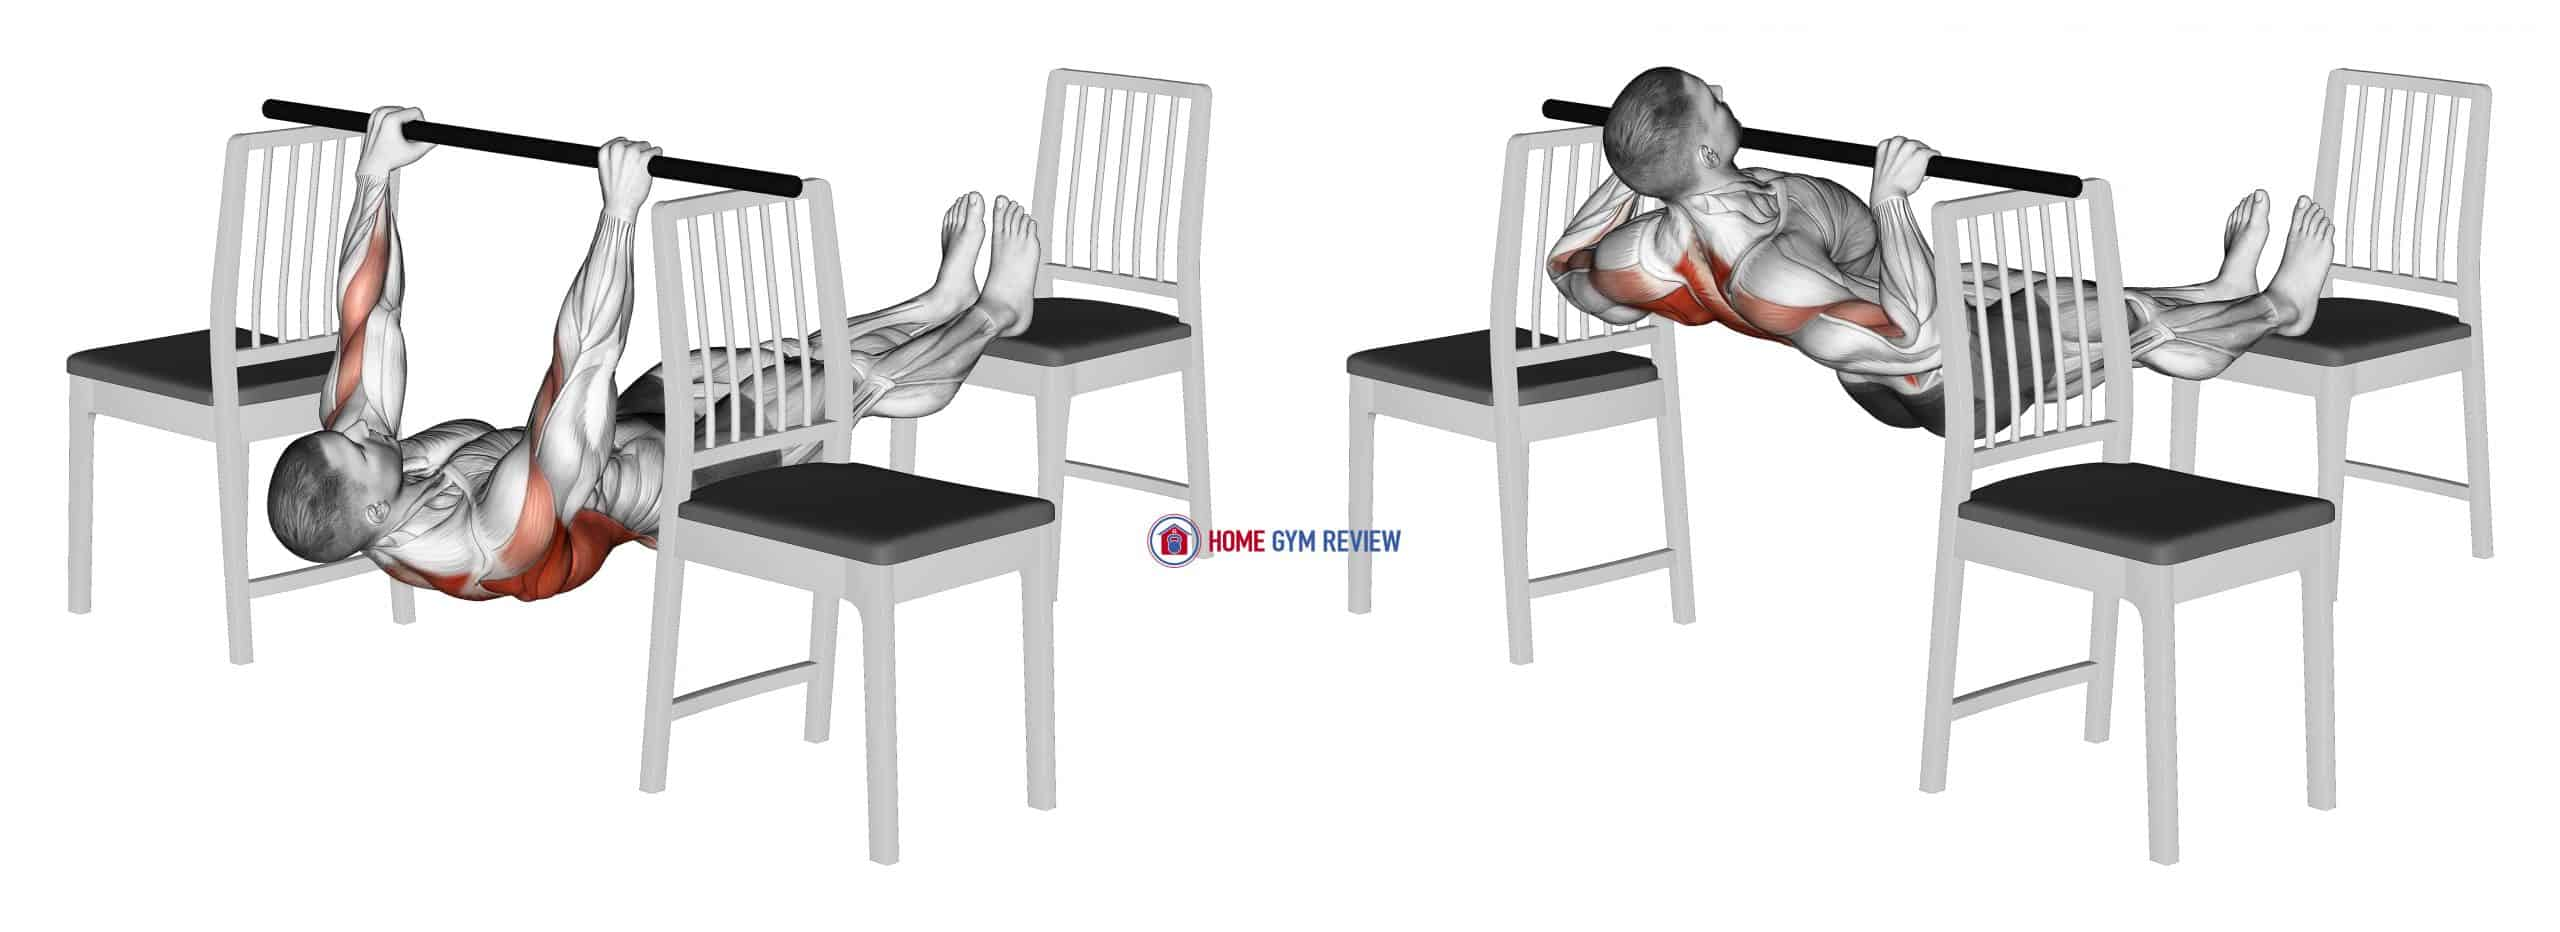 Elevanted Inverted Row between 3 Chairs